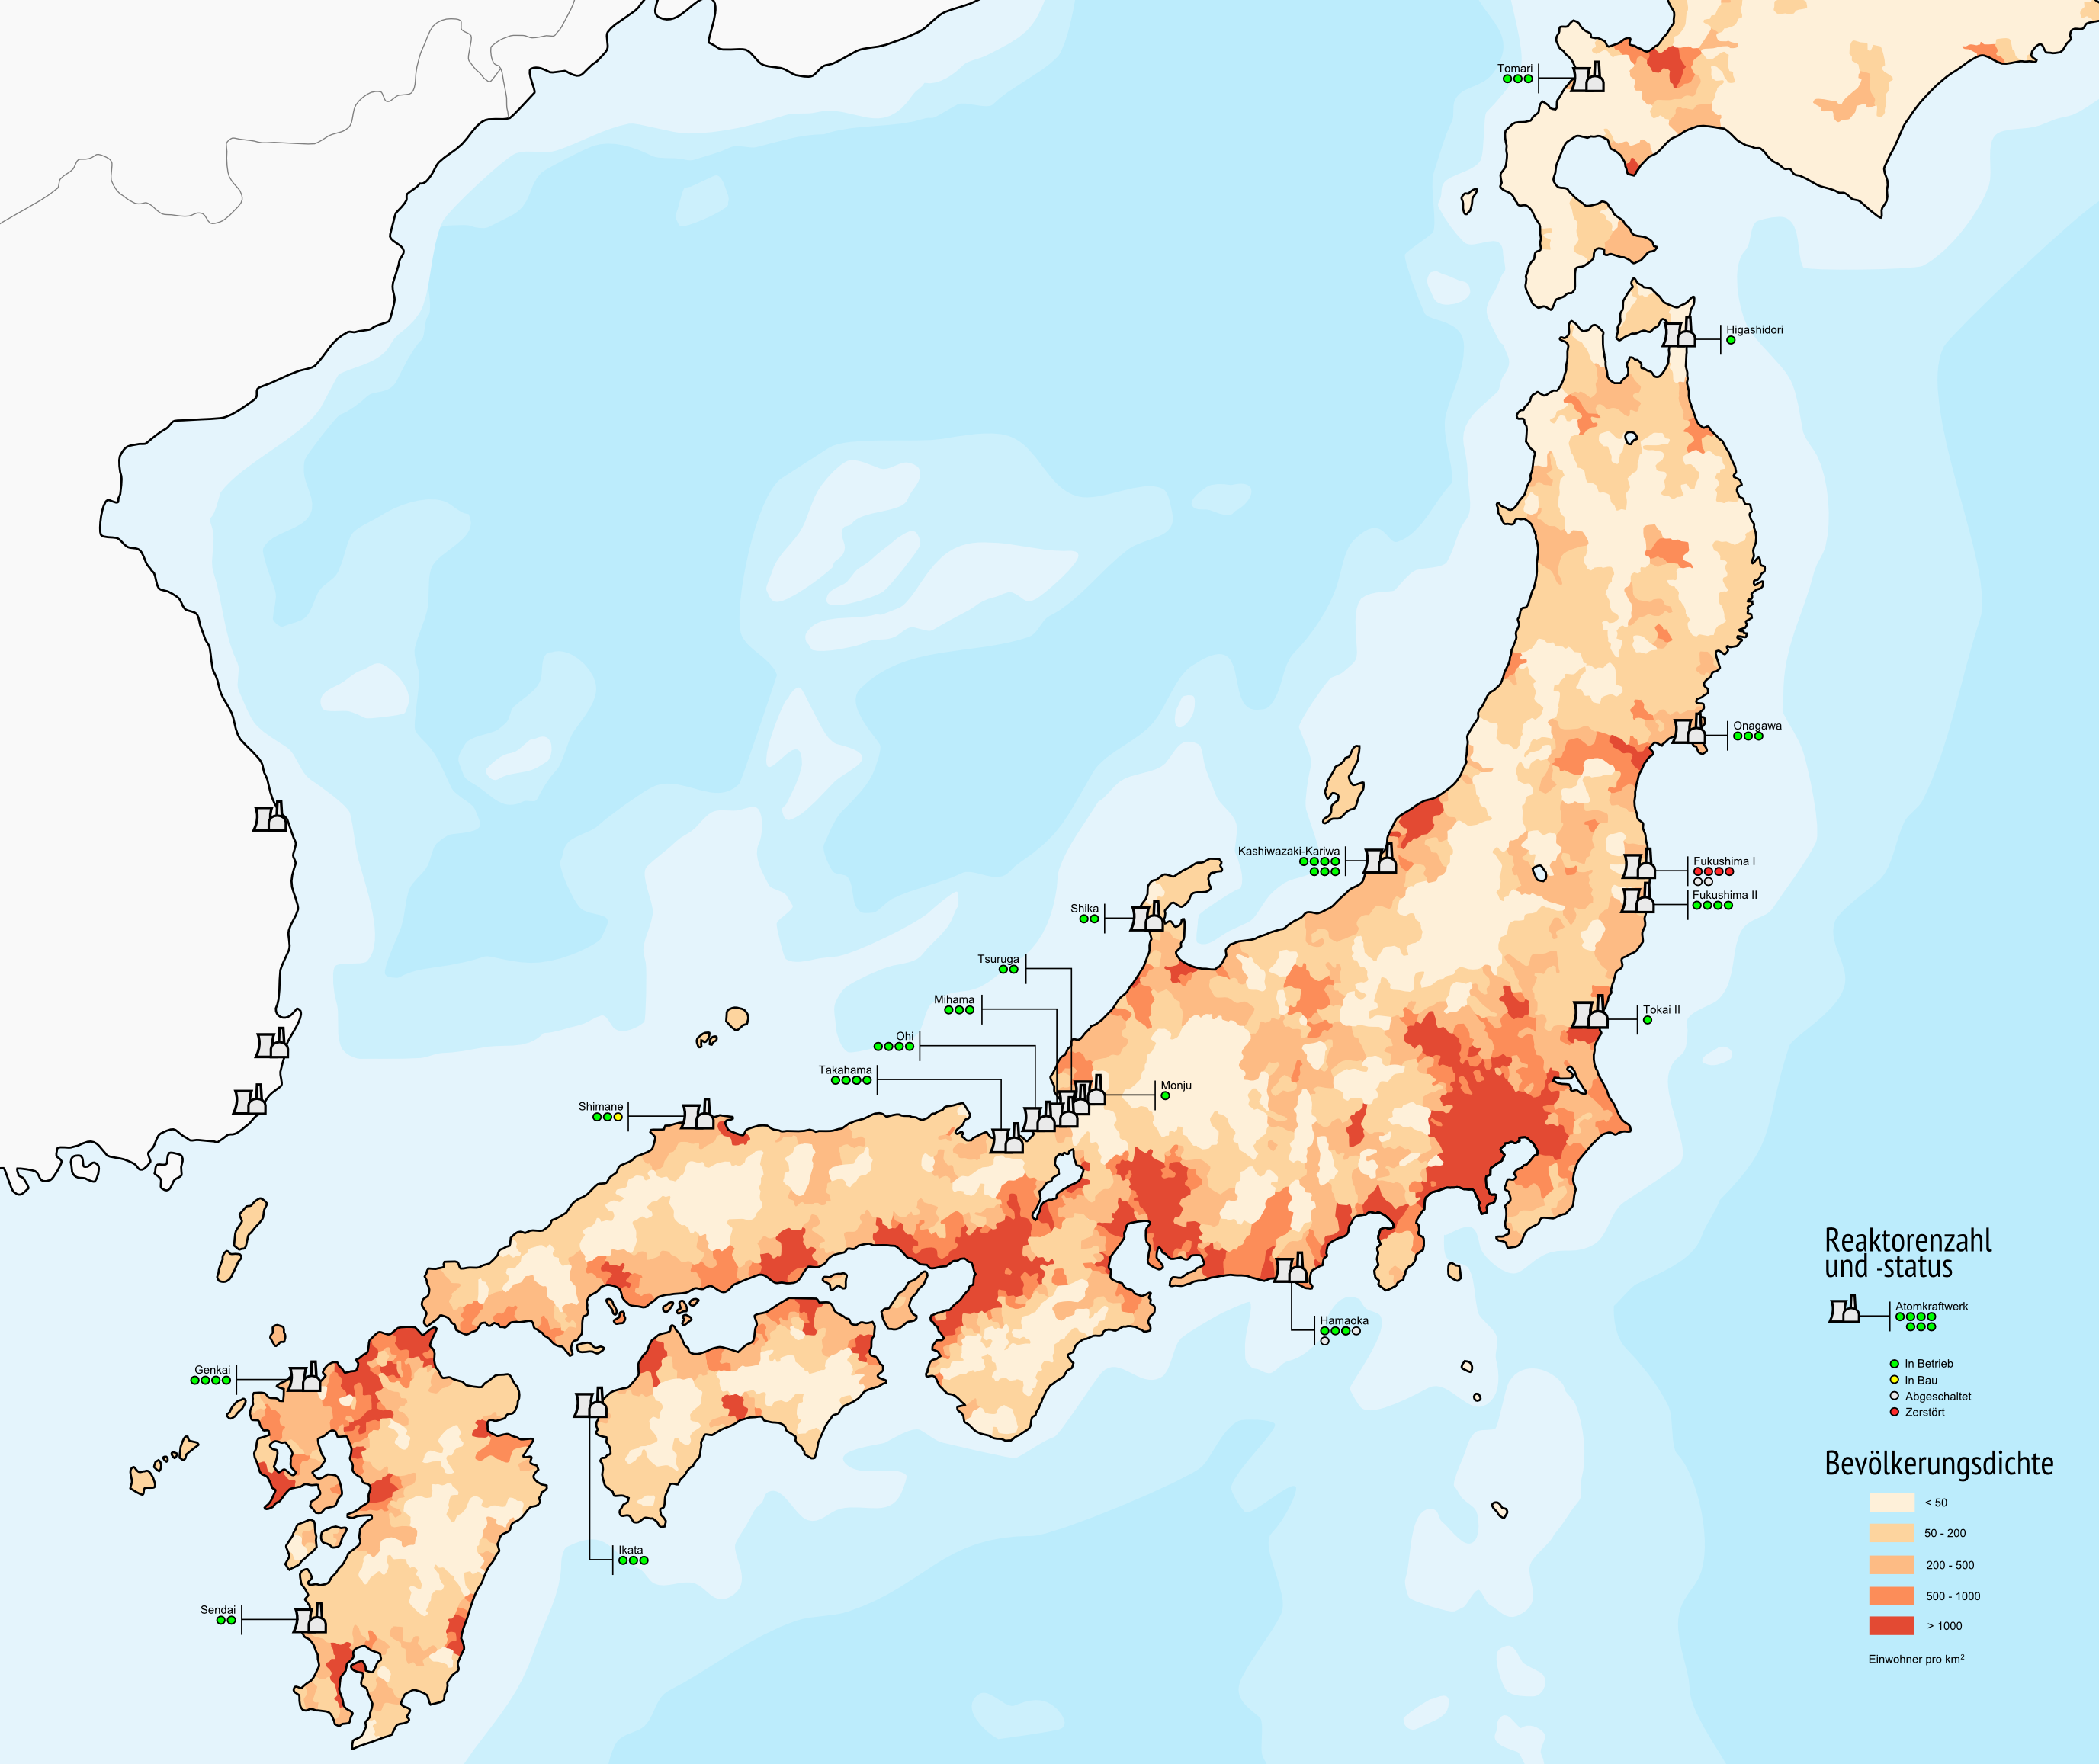 http://upload.wikimedia.org/wikipedia/commons/a/a1/Japan_nuclear_power_plants_de.png